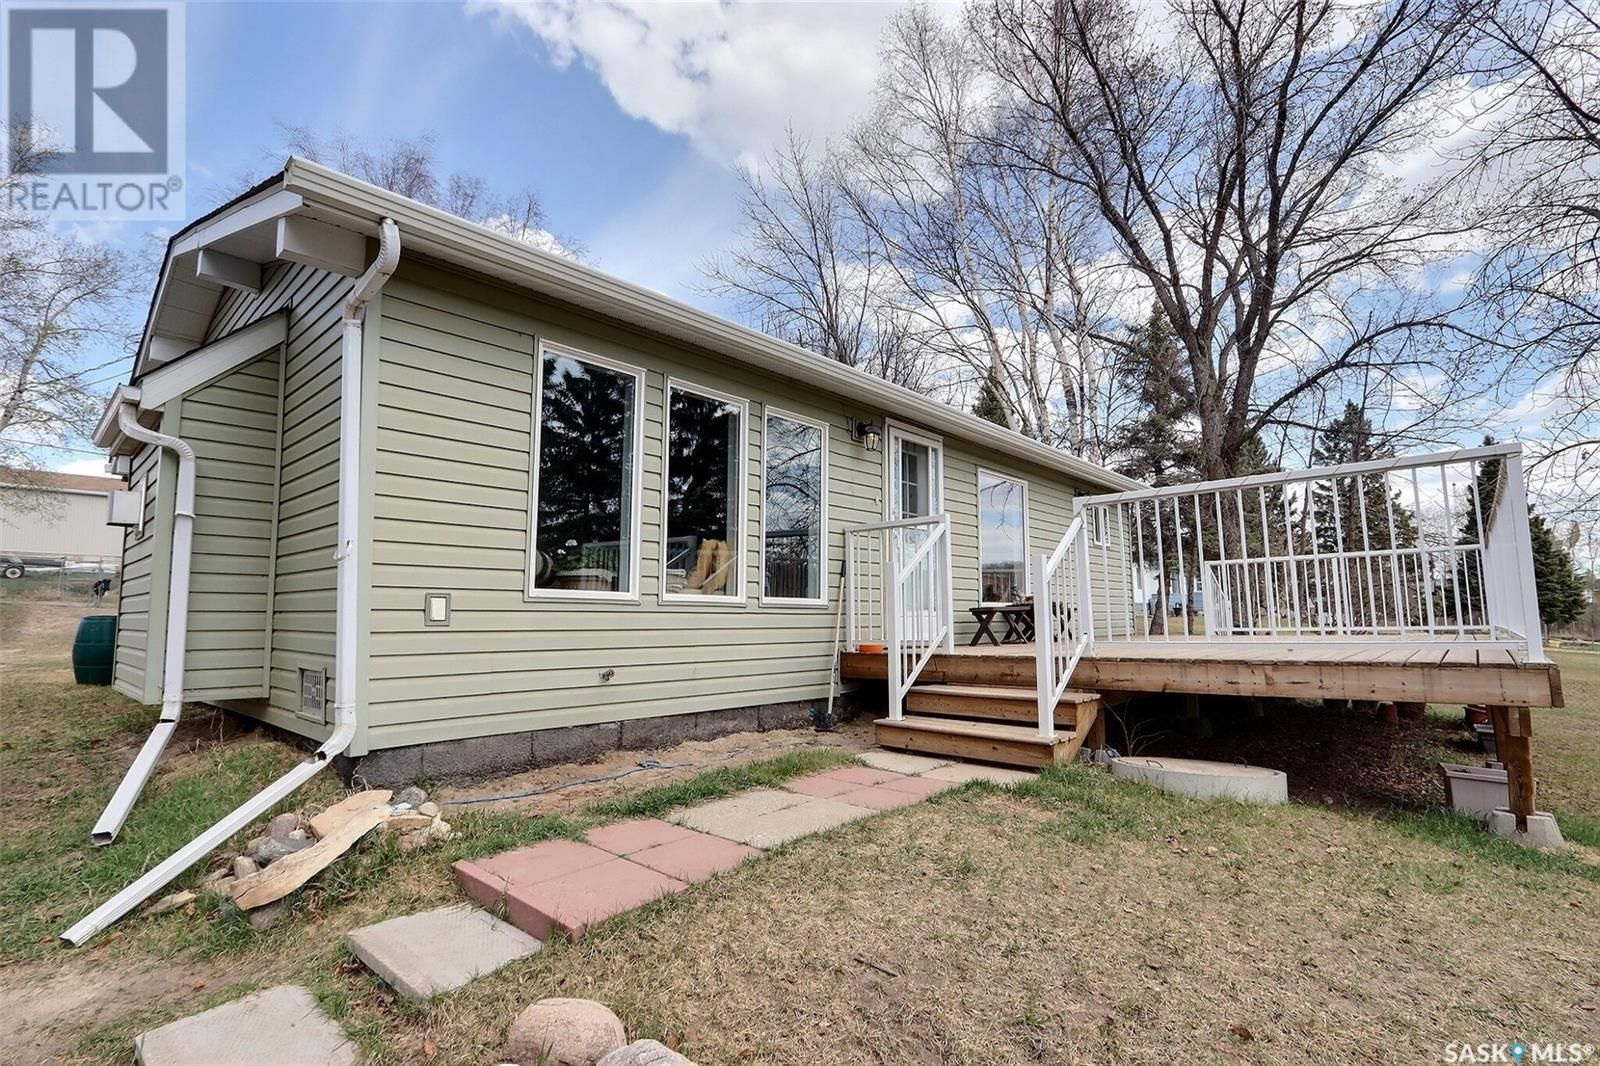 Main Photo: 371 Main ST in Christopher Lake: House for sale : MLS®# SK855072